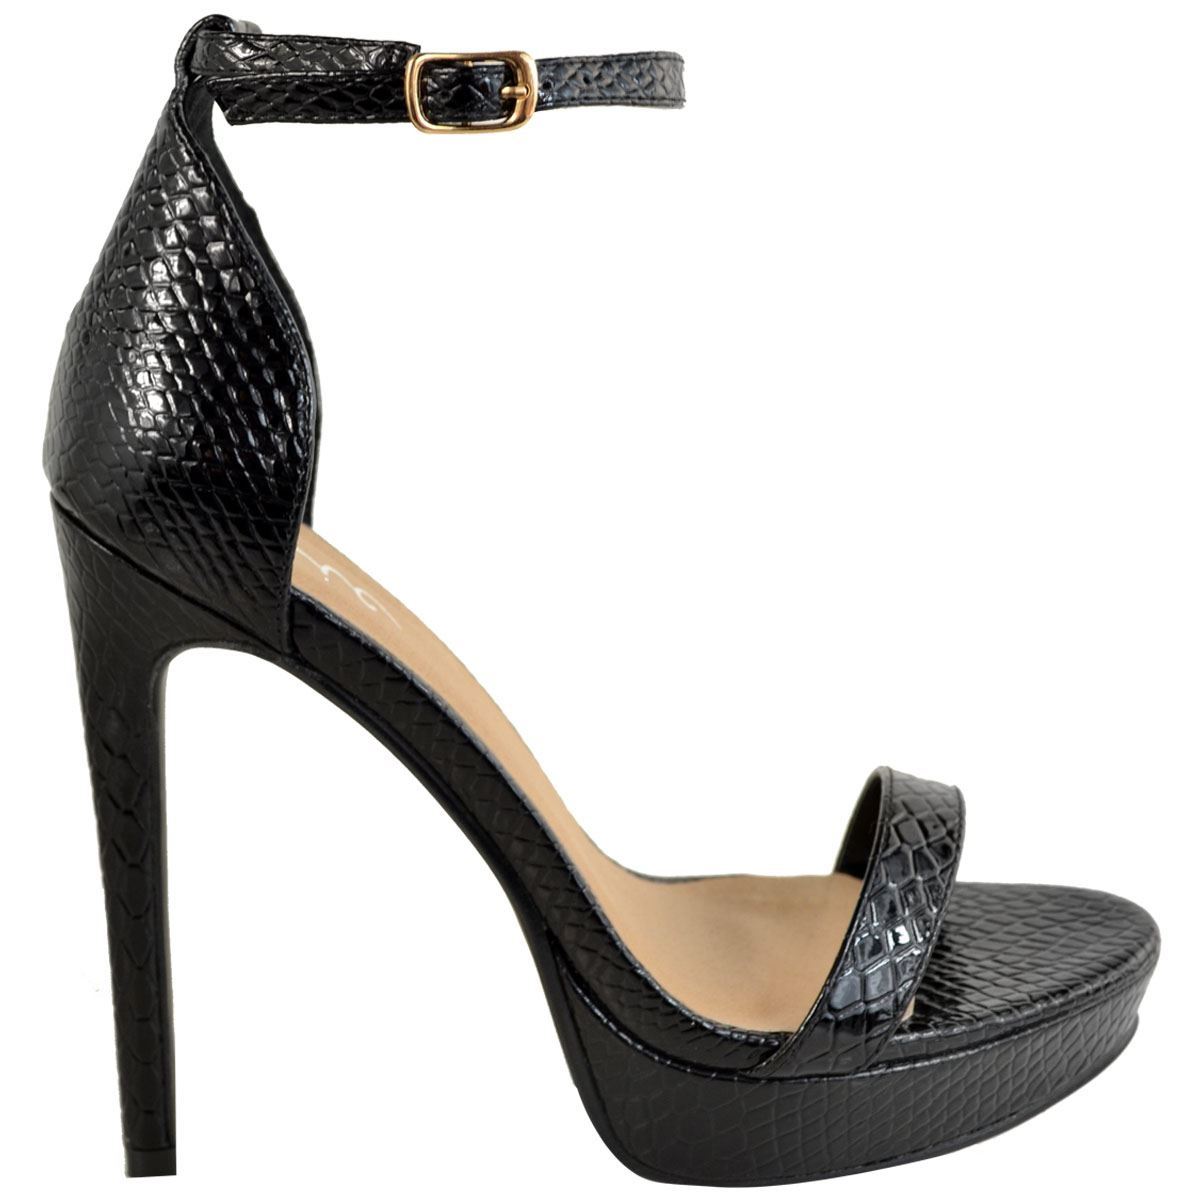 Womens-Ladies-Platform-High-Heel-Stiletto-Sandals-Sexy-Party-Prom-Shoes-Size-New